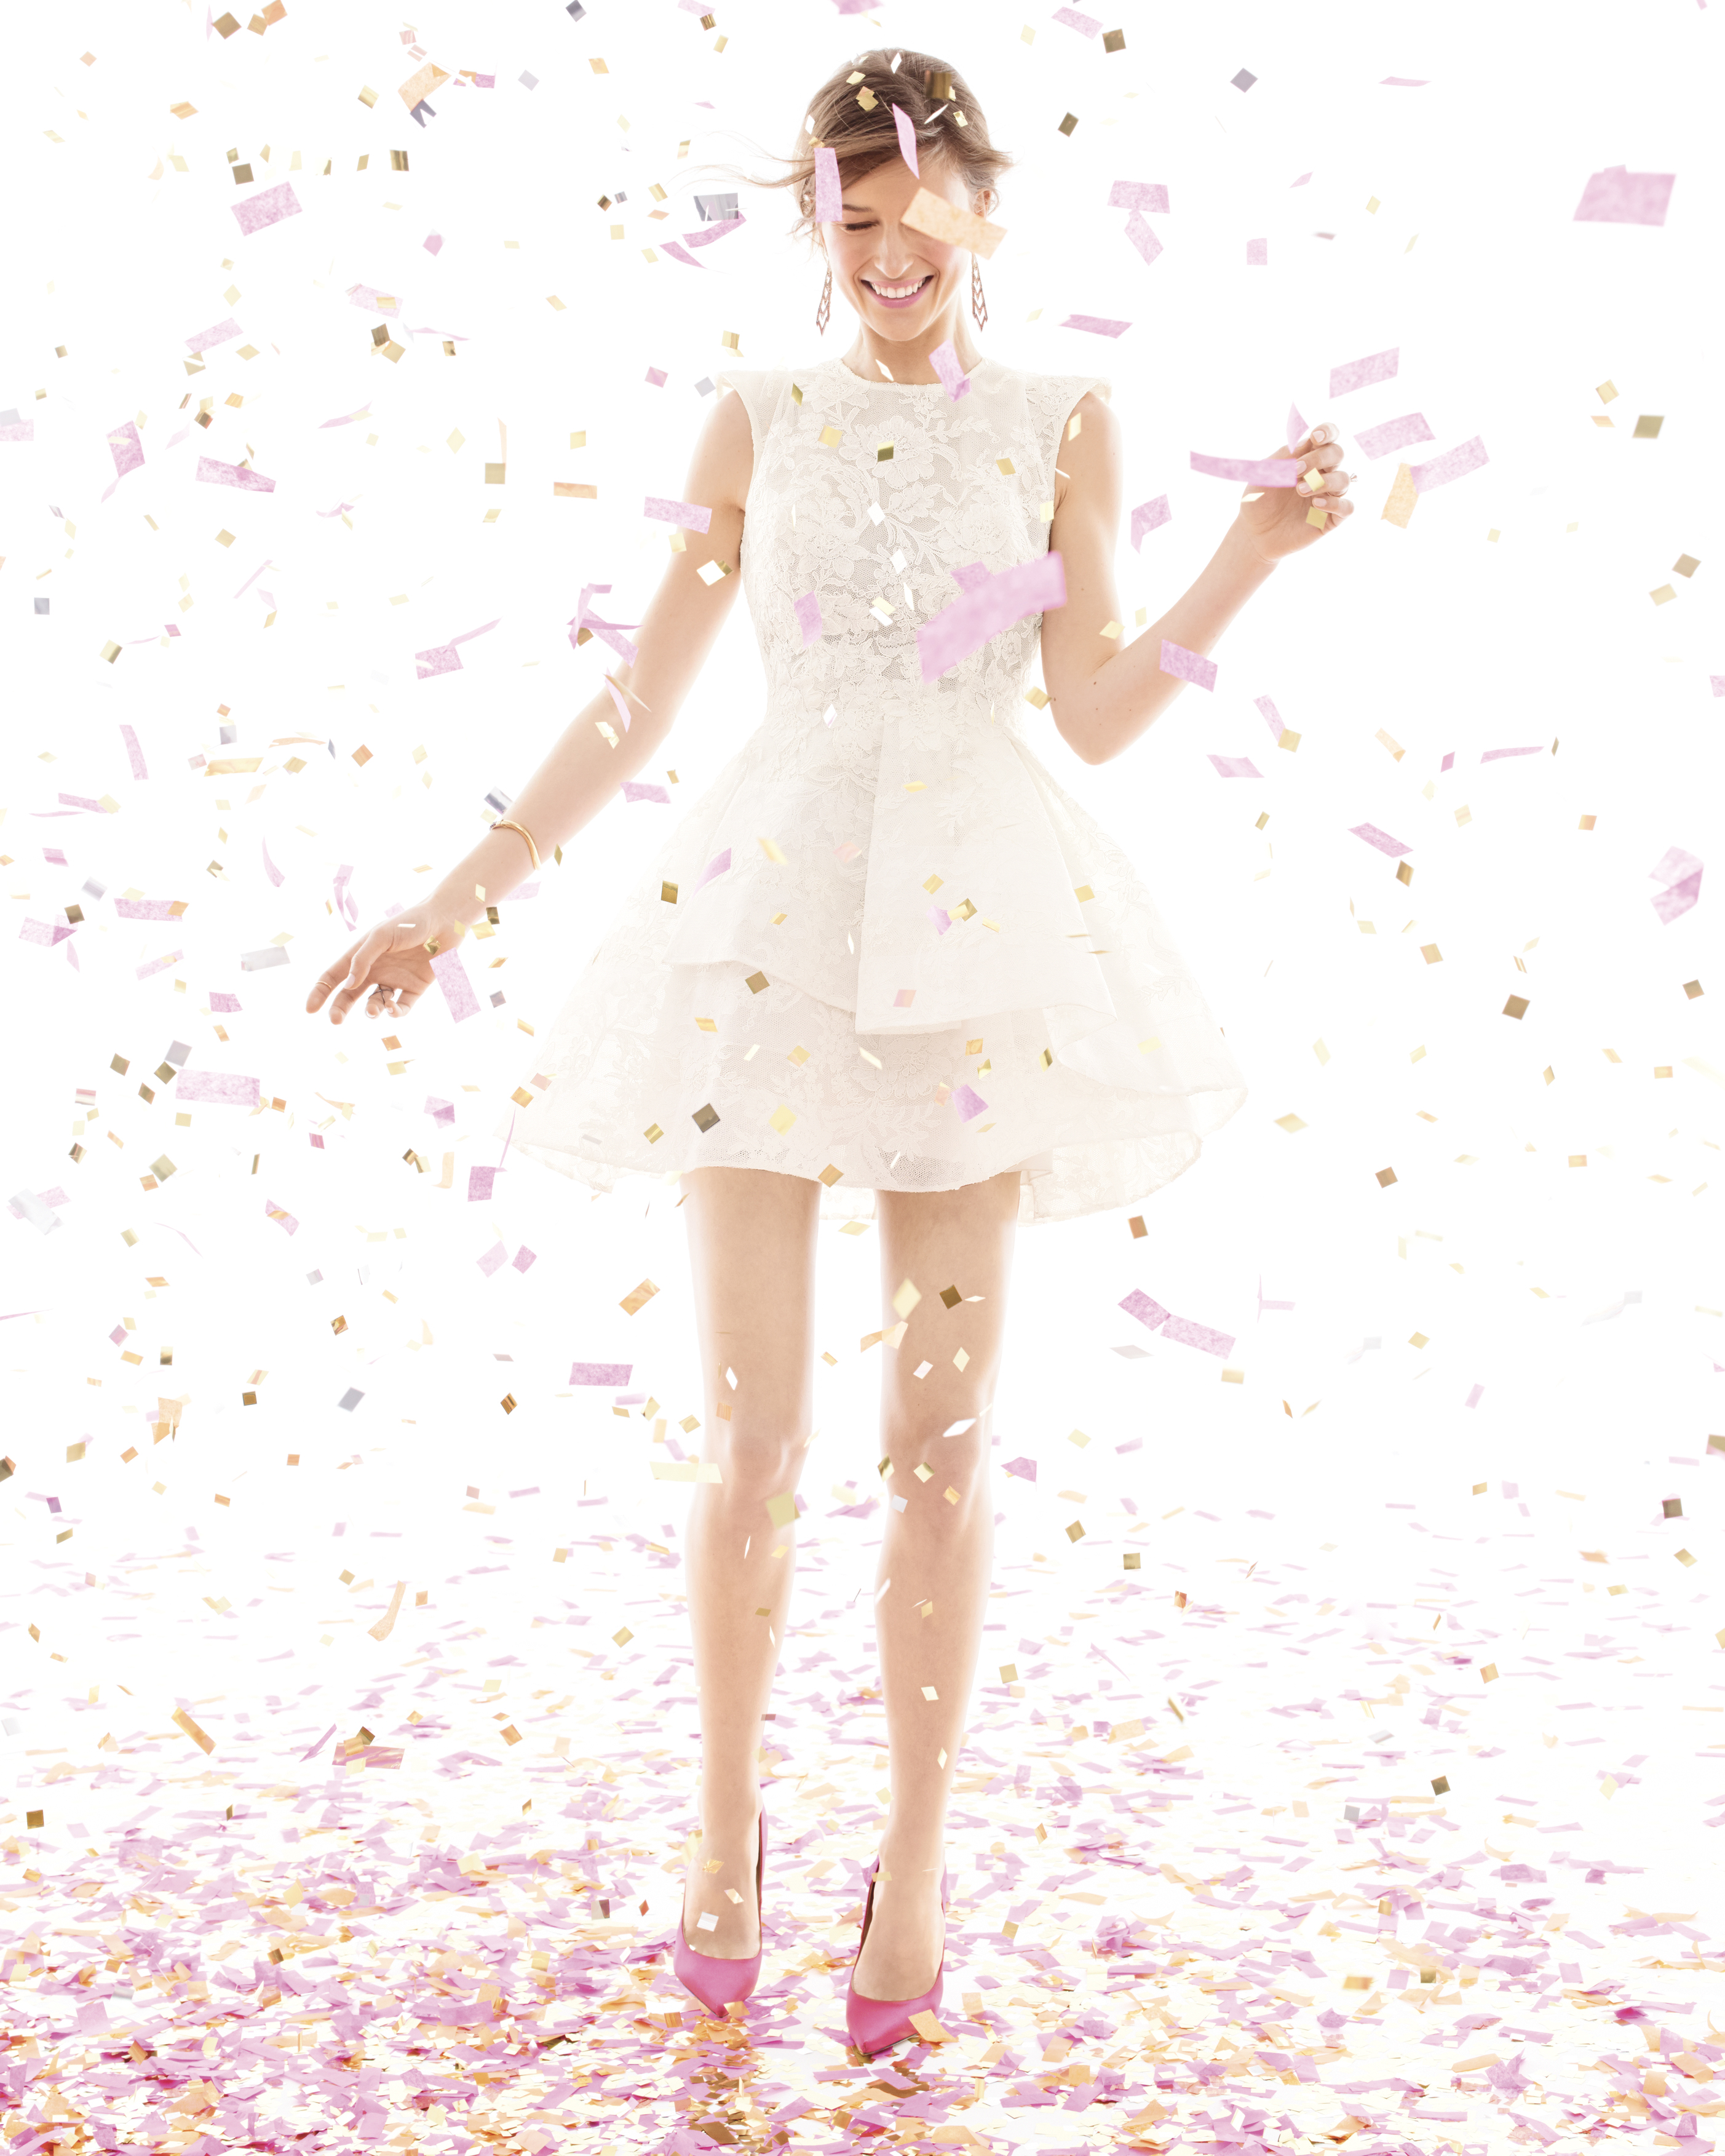 12 Wedding Dresses Fit for the Happiest Day of Your Life